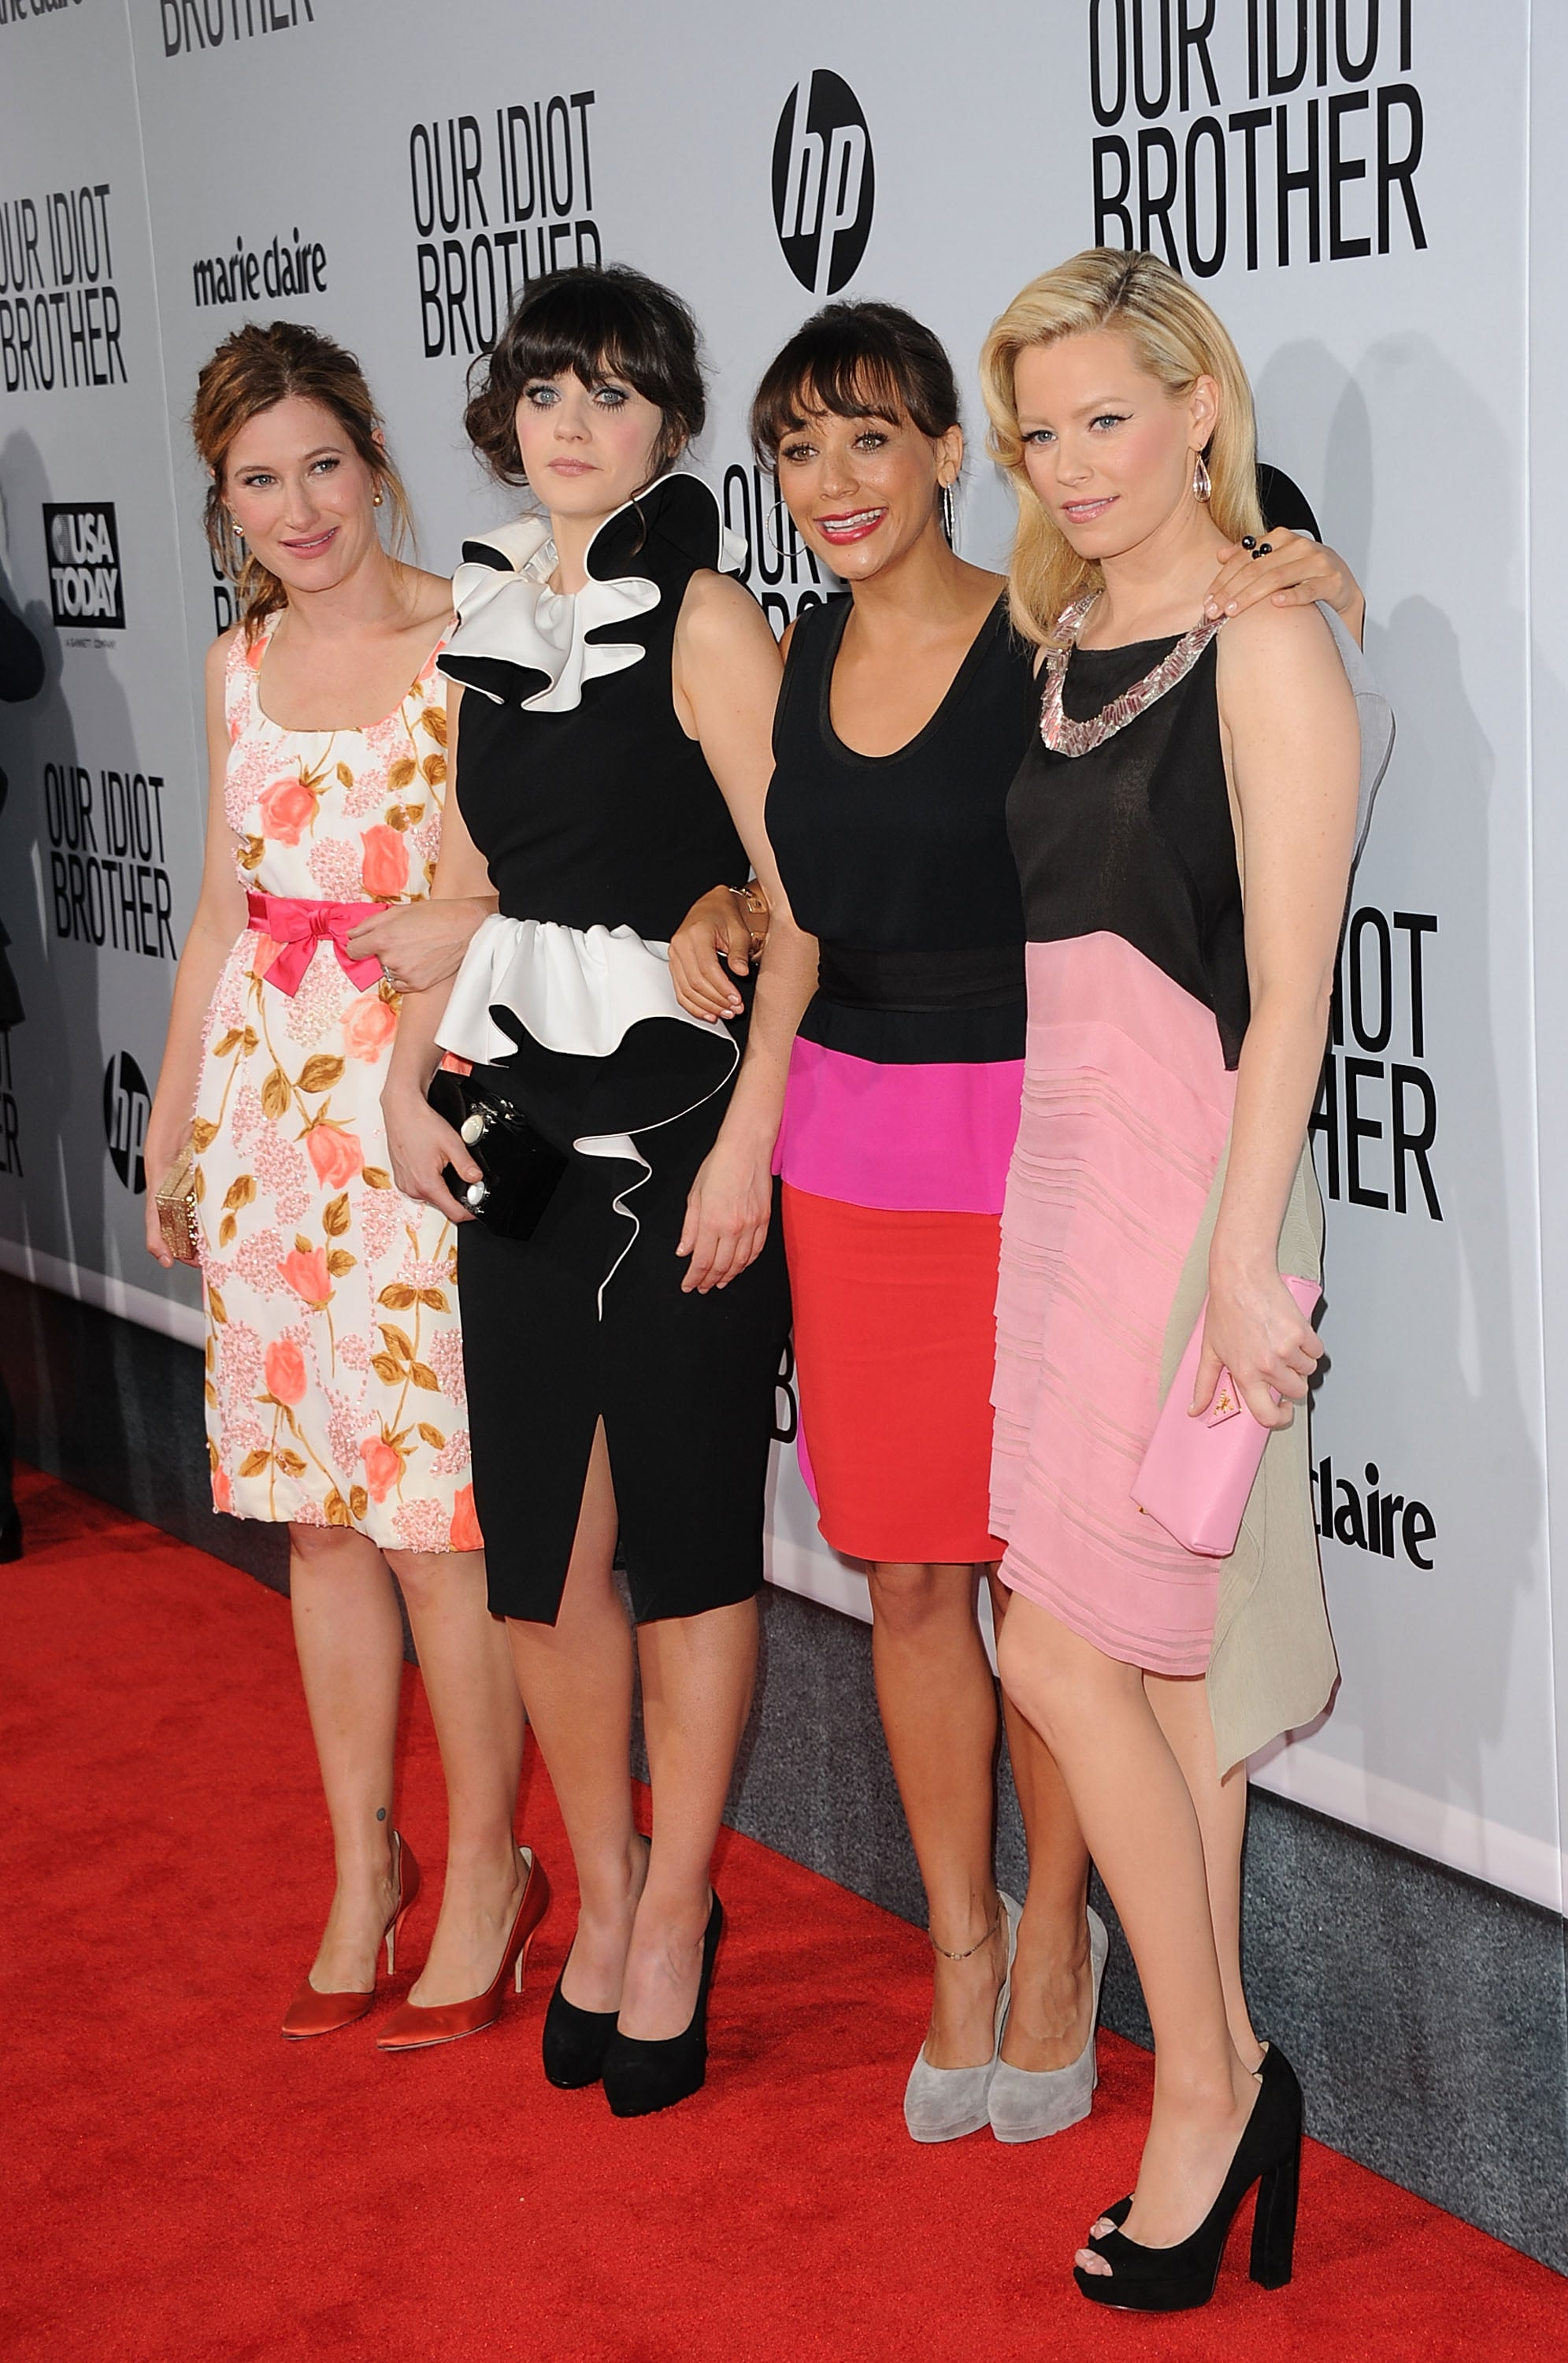 Kathryn Hahn, Zooey Deschanel, Rashida Jones and Elizabeth Banks